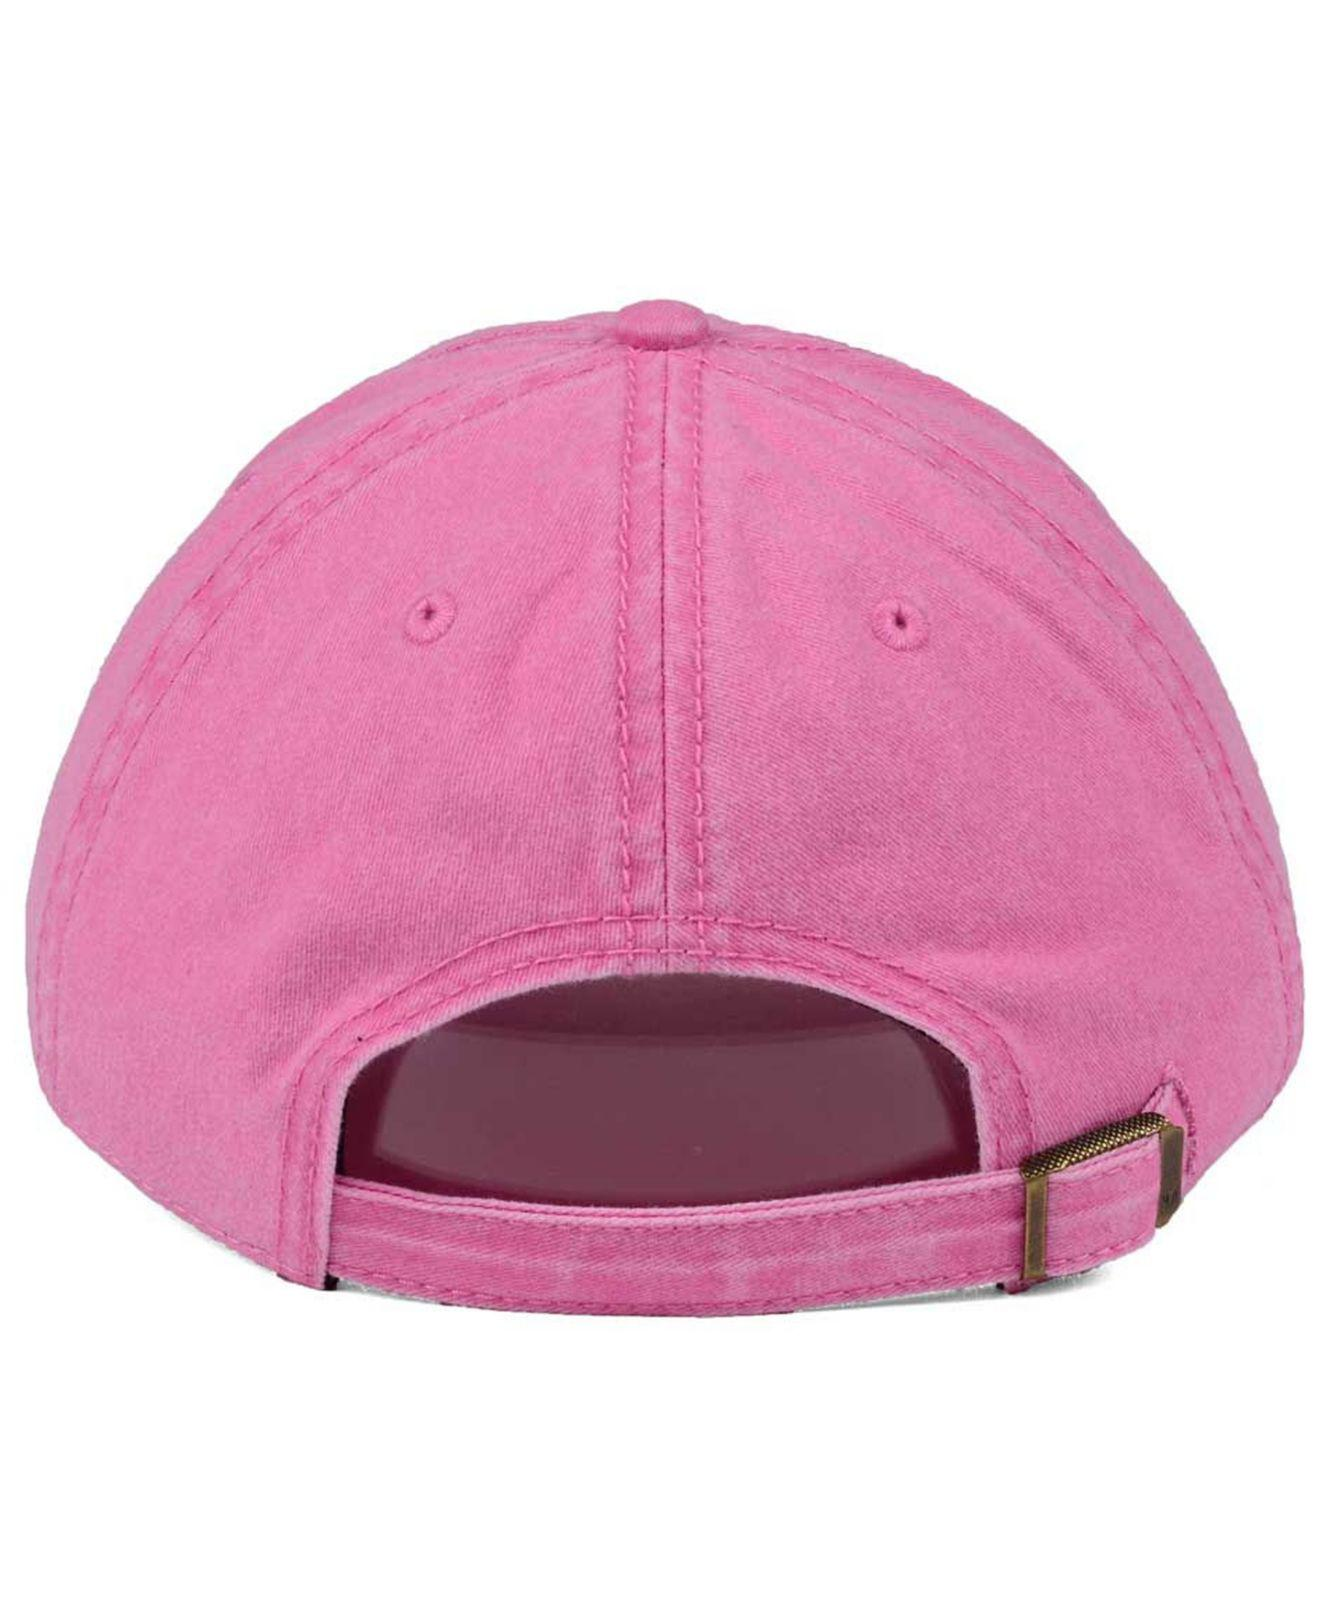 separation shoes 1b0d9 6e082 ... women camping hunting outdoor coupon for pink pittsburgh pirates  summerland clean up cap for men lyst. view fullscreen 31f11 ...